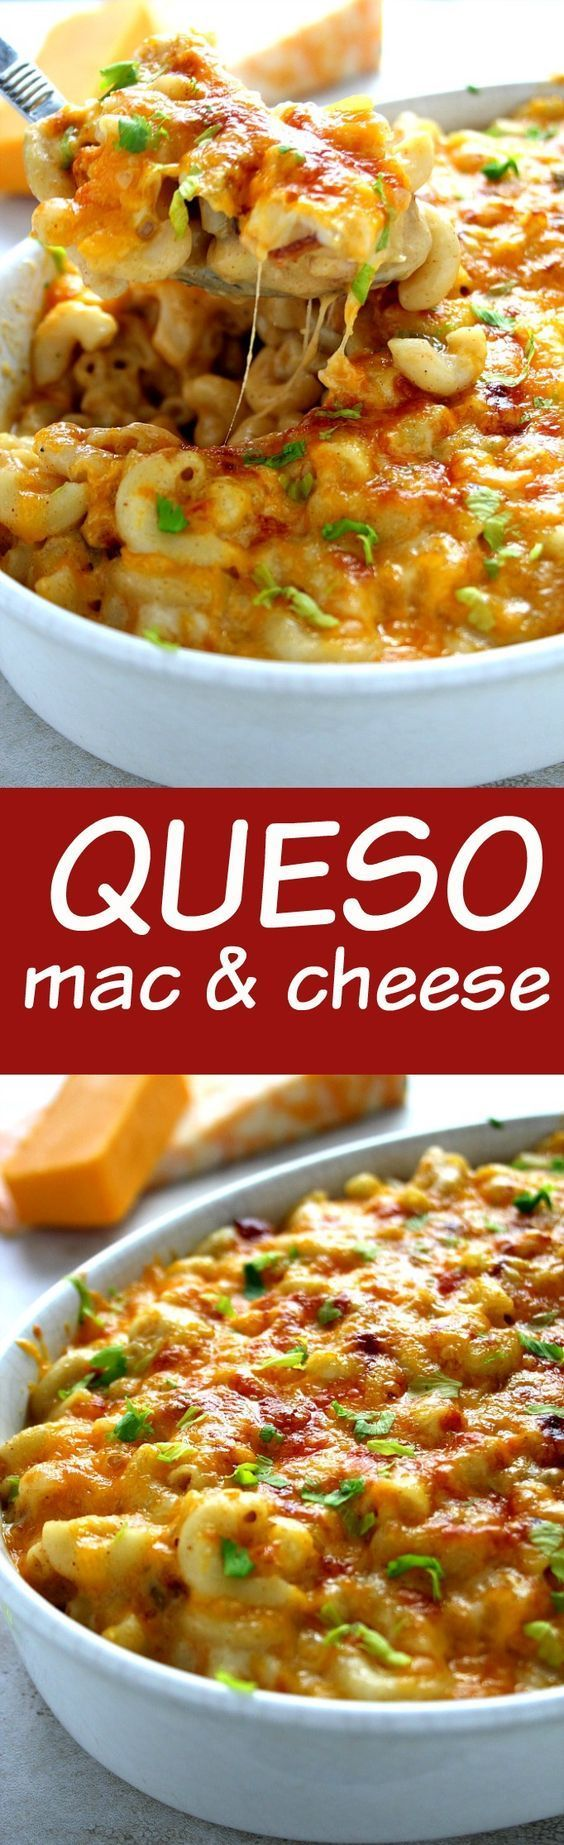 Queso Mac and Cheese with Bacon Recipe Pinterest: /annahpyra/